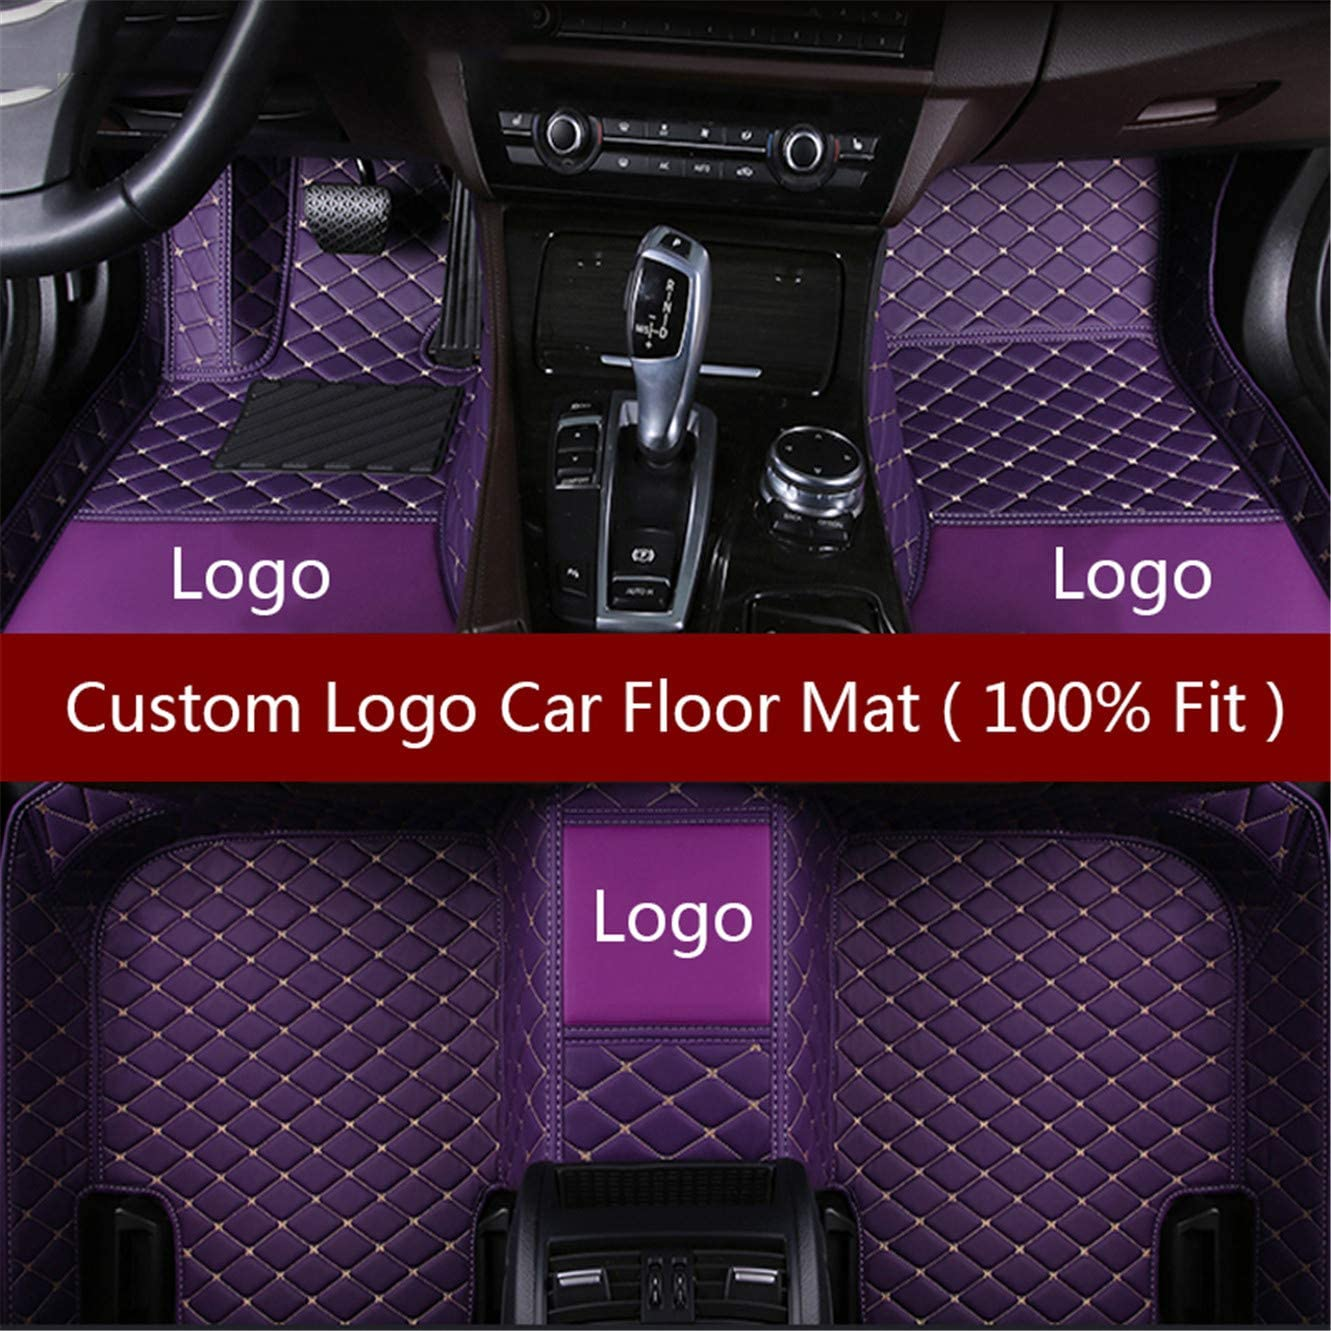 Car Floor Mats for Chevrolet Silverado 2014-2017 Custom Leather mat Full Surrounded Cargo Liner All Weather Protection Waterpoof Non-Slip Set Left Drive Black and Red